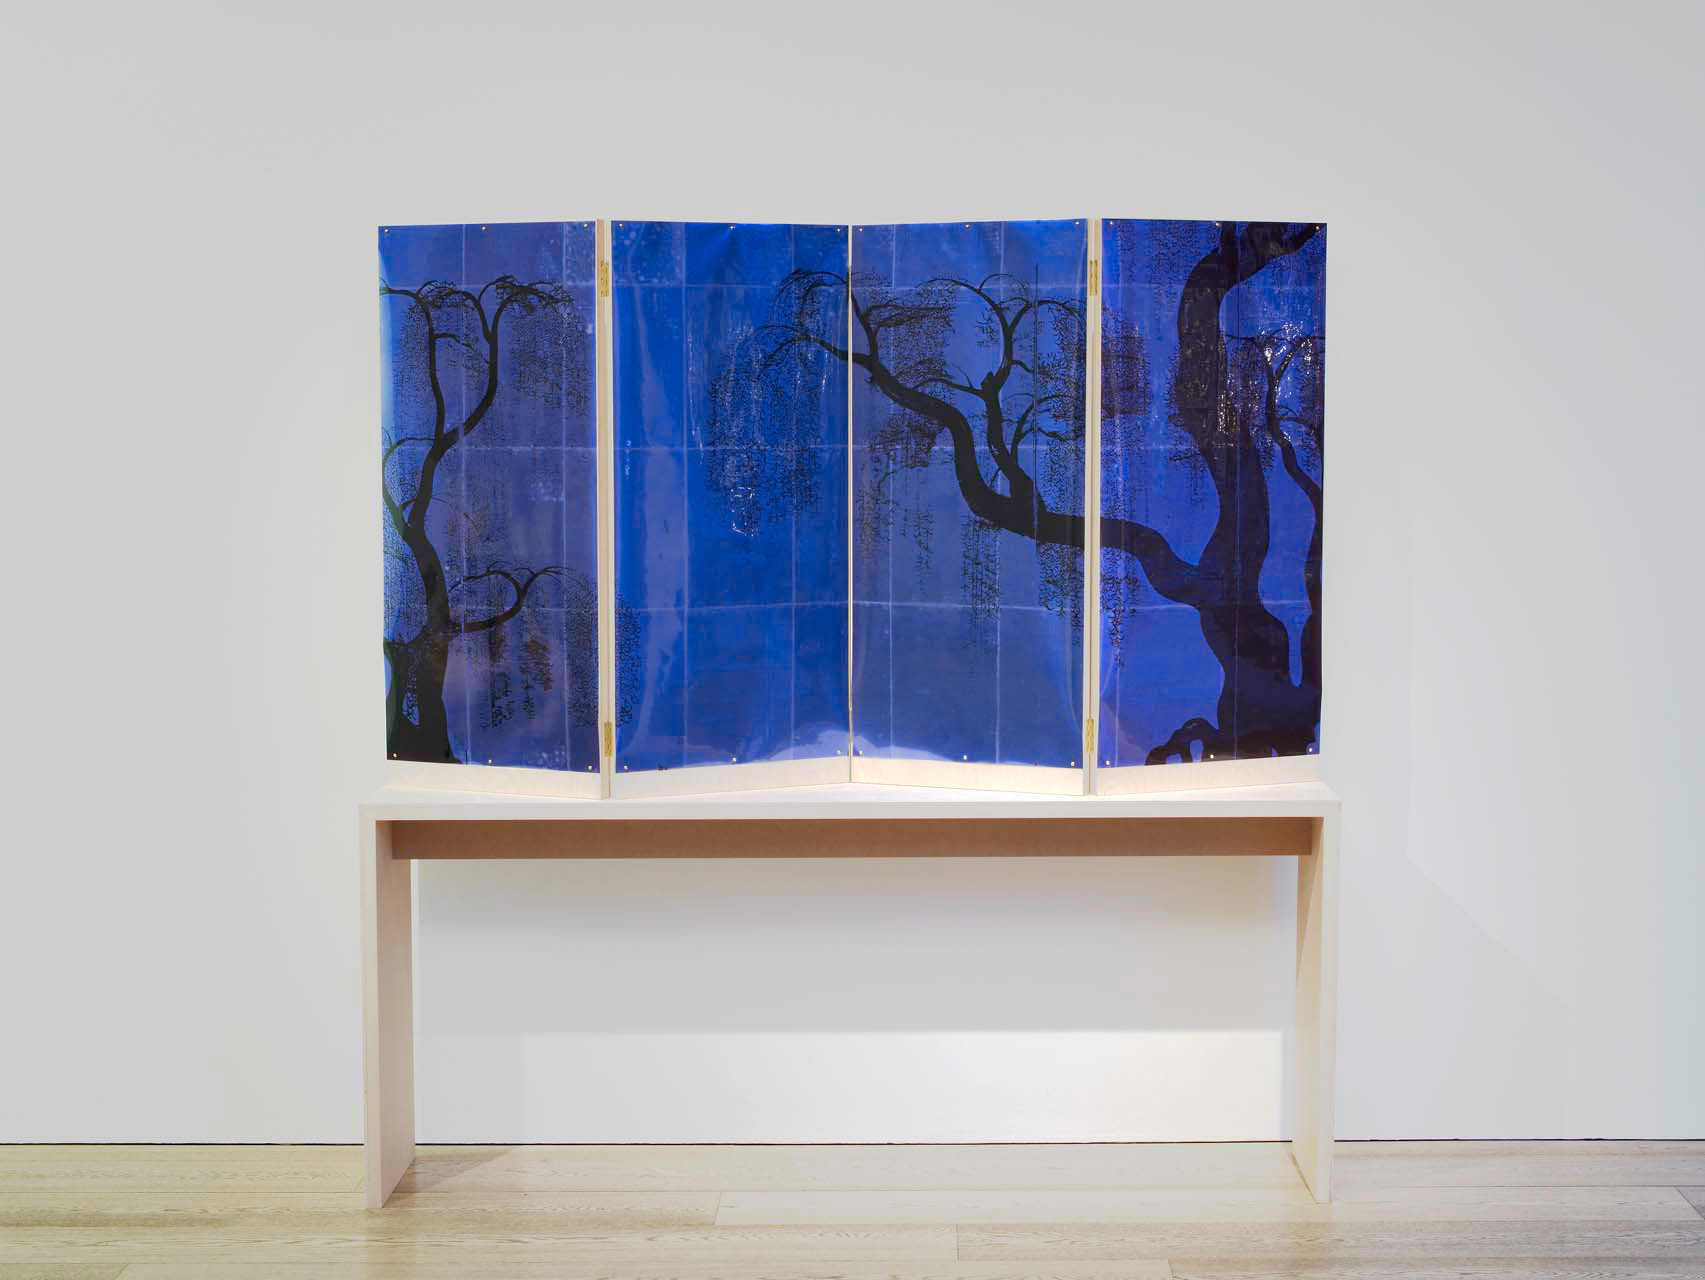 """<div class=""""artwork_caption""""><p>A Weeping Willow Crying on His Pillow (Blue), 2010</p></div>"""